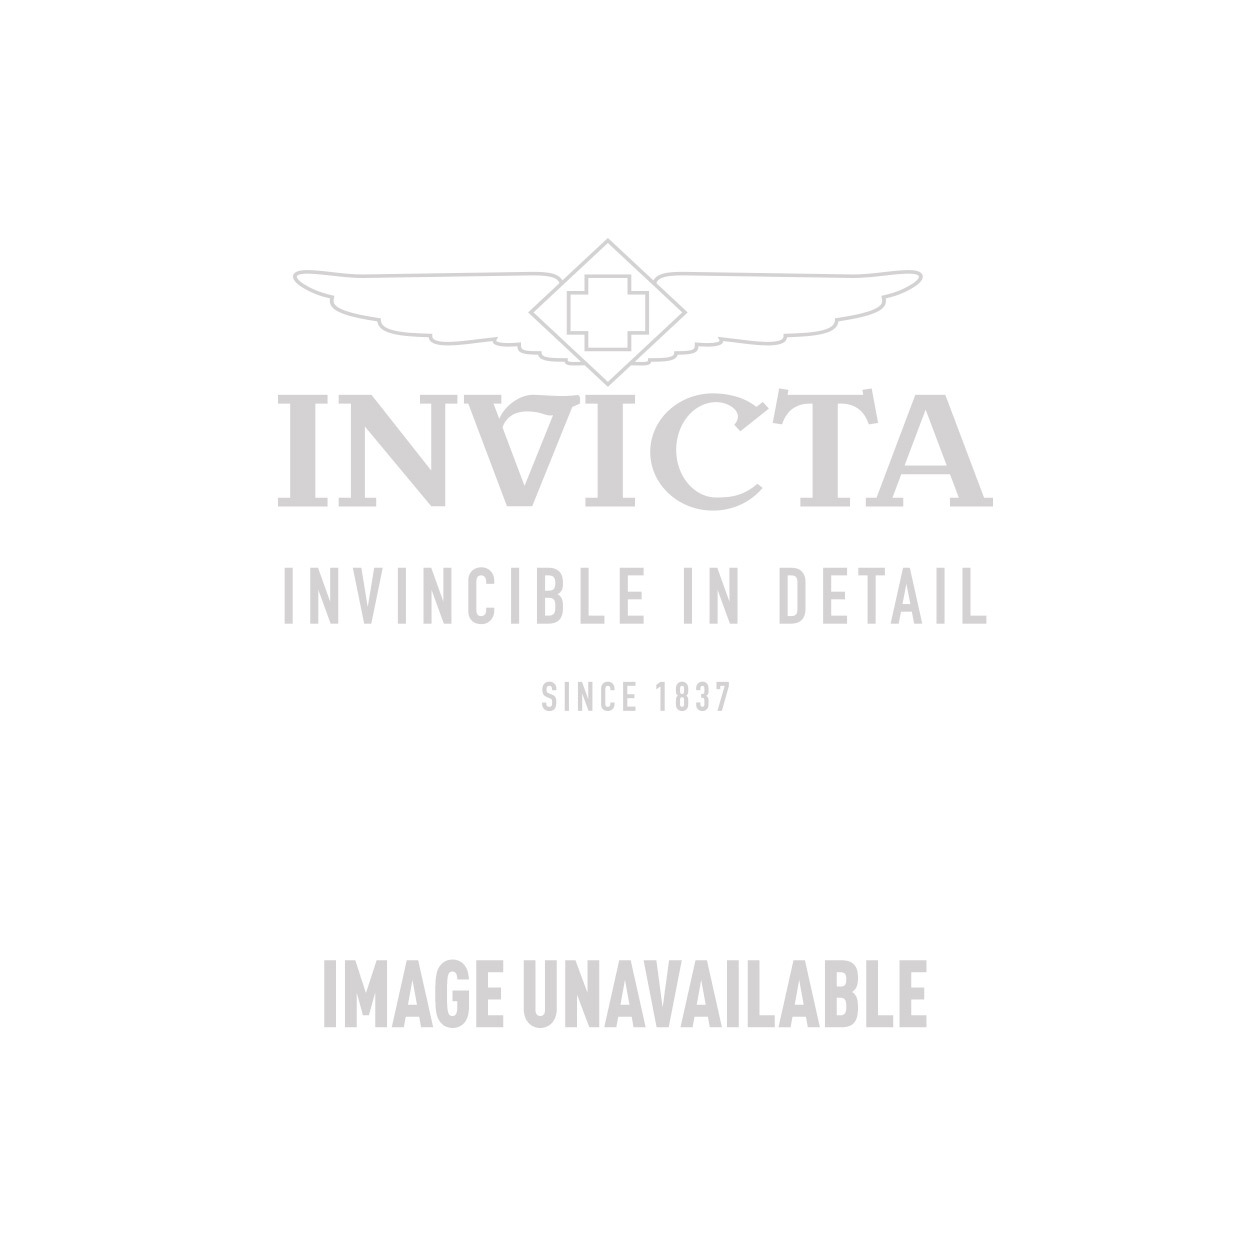 Invicta Sea Hunter Swiss Movement Quartz Watch - Stainless Steel case Stainless Steel band - Model 19602